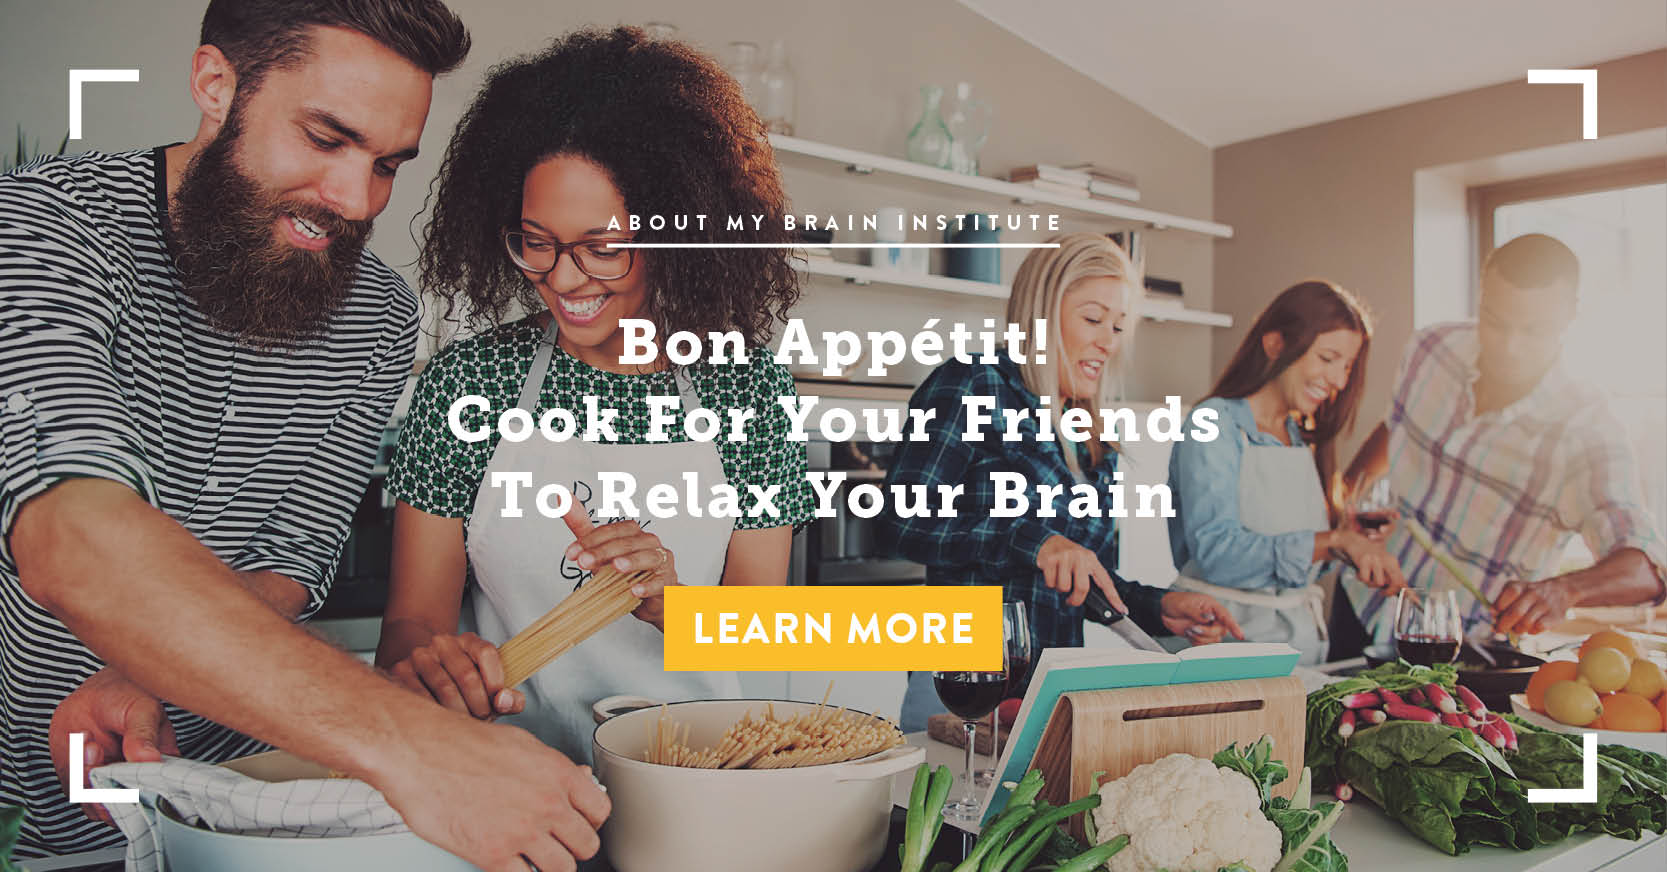 Bon Appétit! Cook For Your Friends To Relax Your Brain